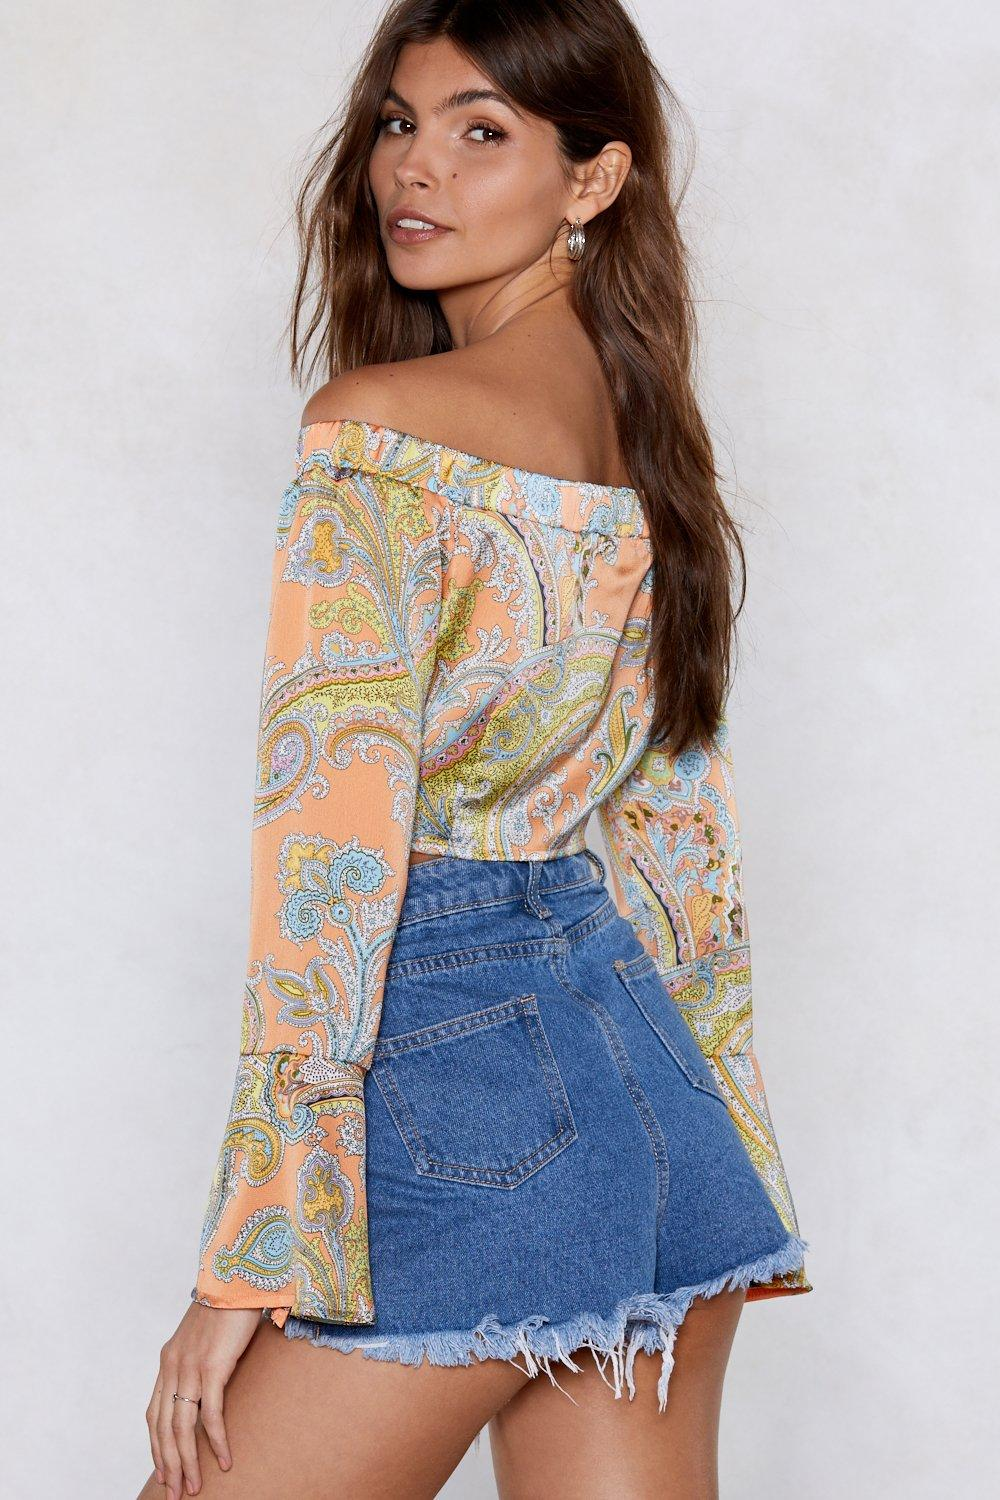 d51864ab2c0b2 The Price You Paisley Crop Top